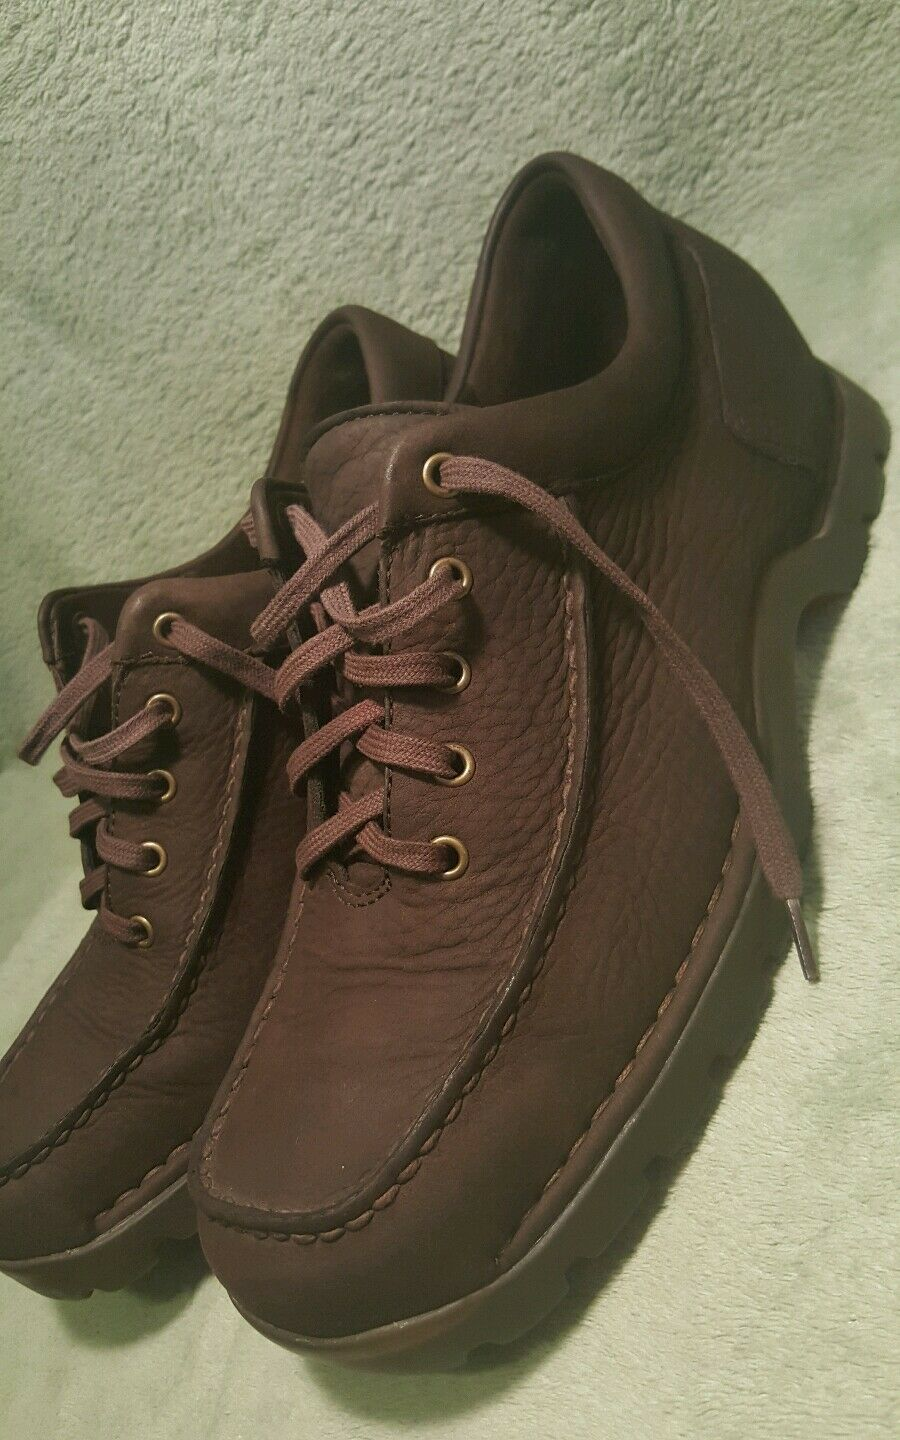 Cole Haan Country Country Haan Nubuck  Chocolate Casual Mens Size 9 M 44ed04